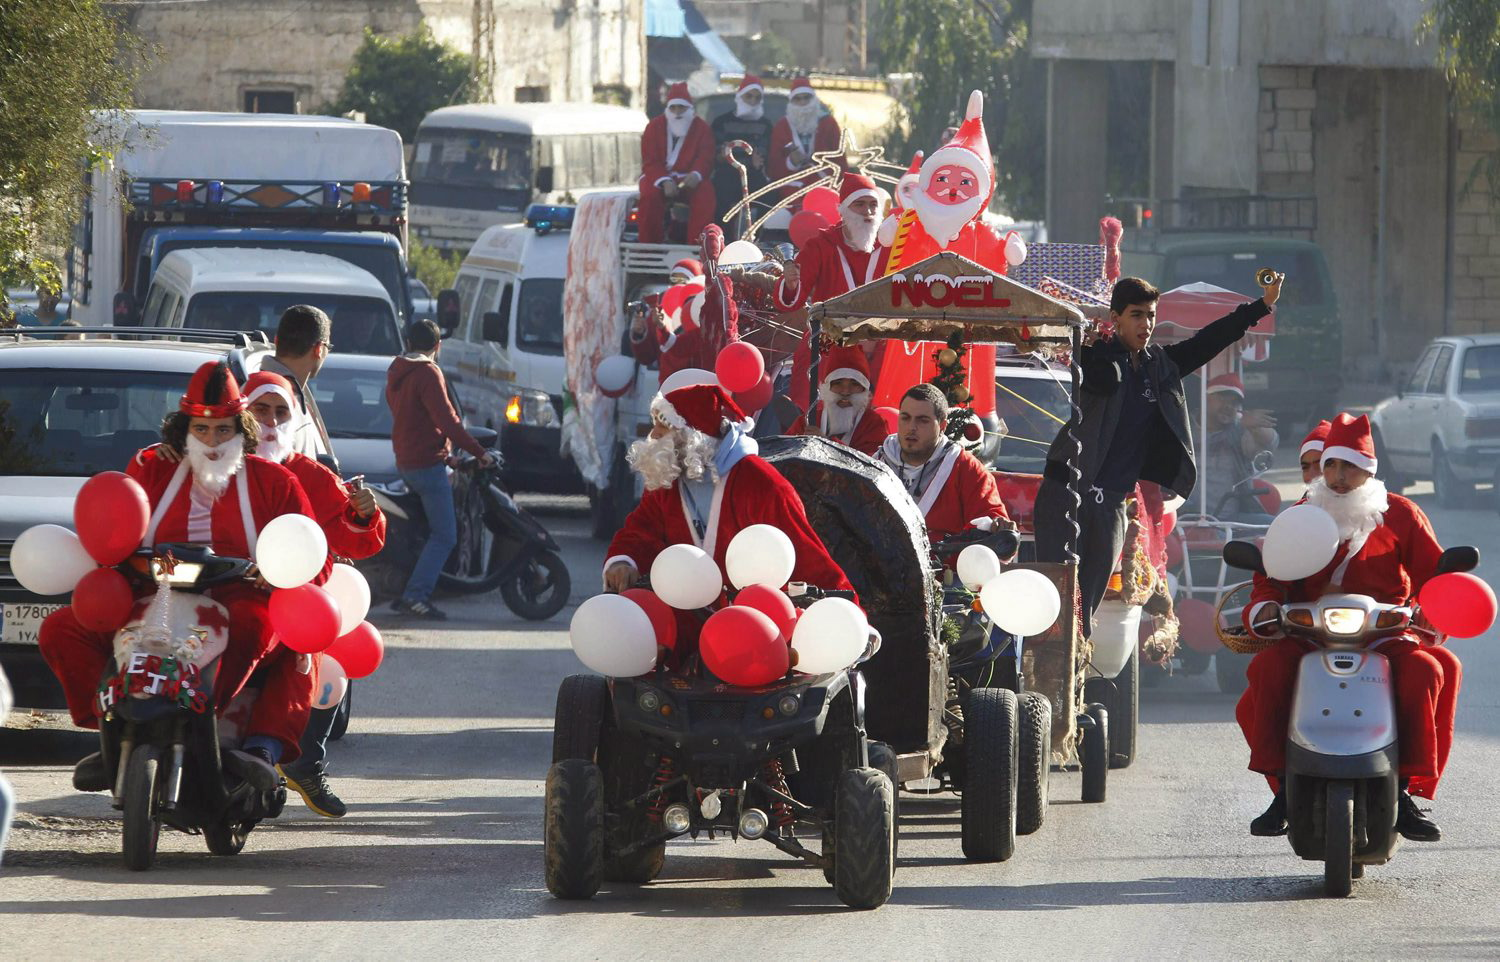 Lebanese Christians dressed as Santa Claus celebrate Christmas in Jiyeh village, south of Beirut